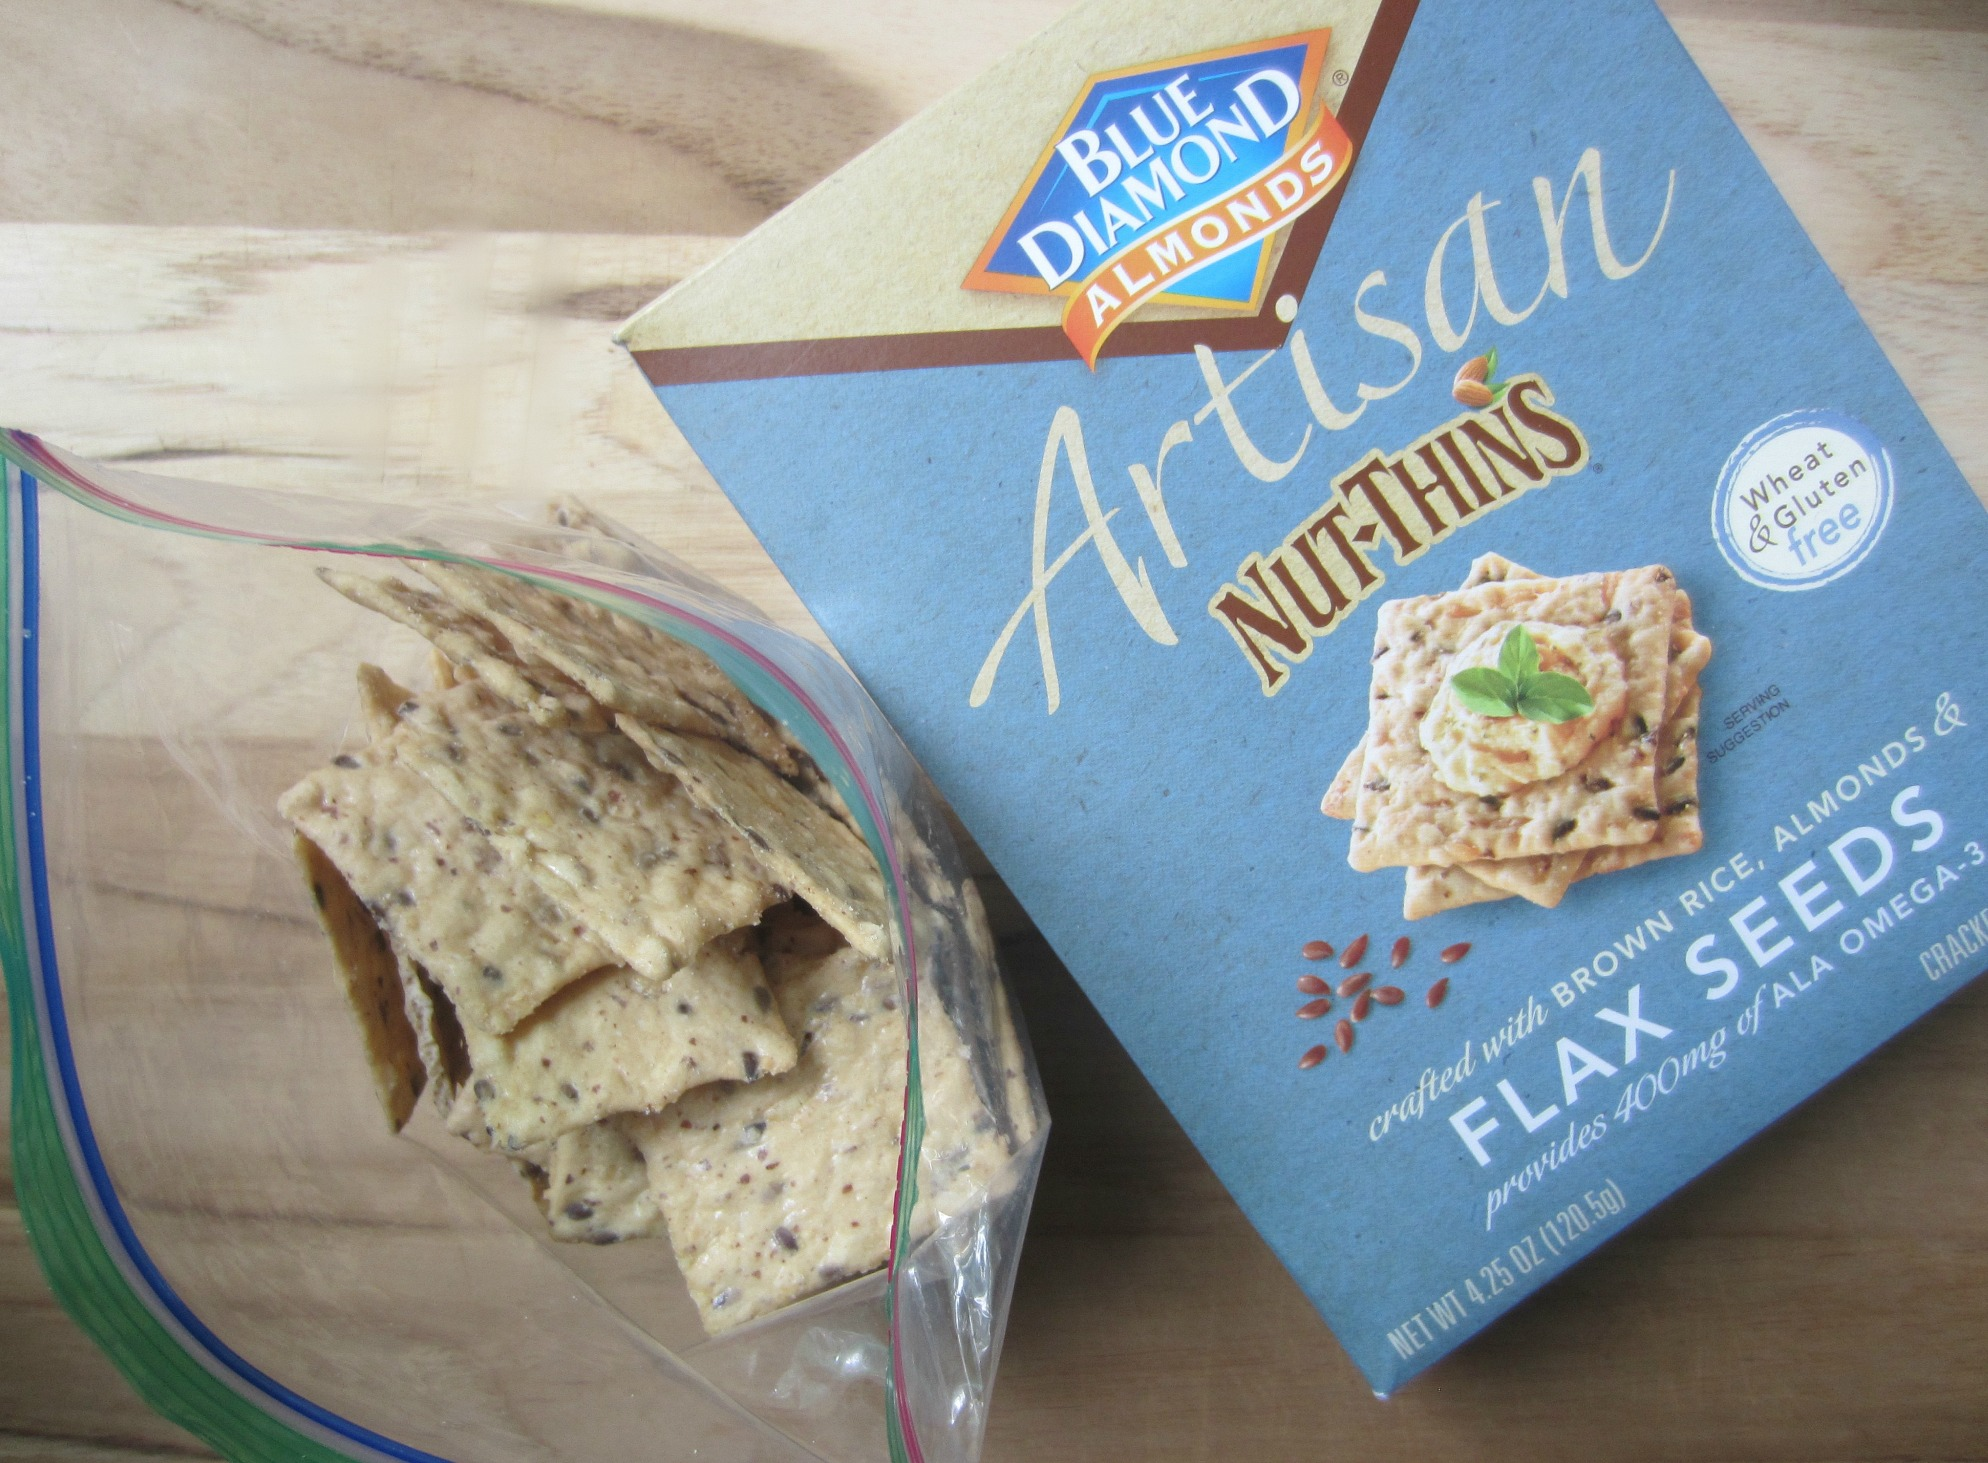 Blue Diamond Almonds Artisan Nut-Thins Flax Seeds